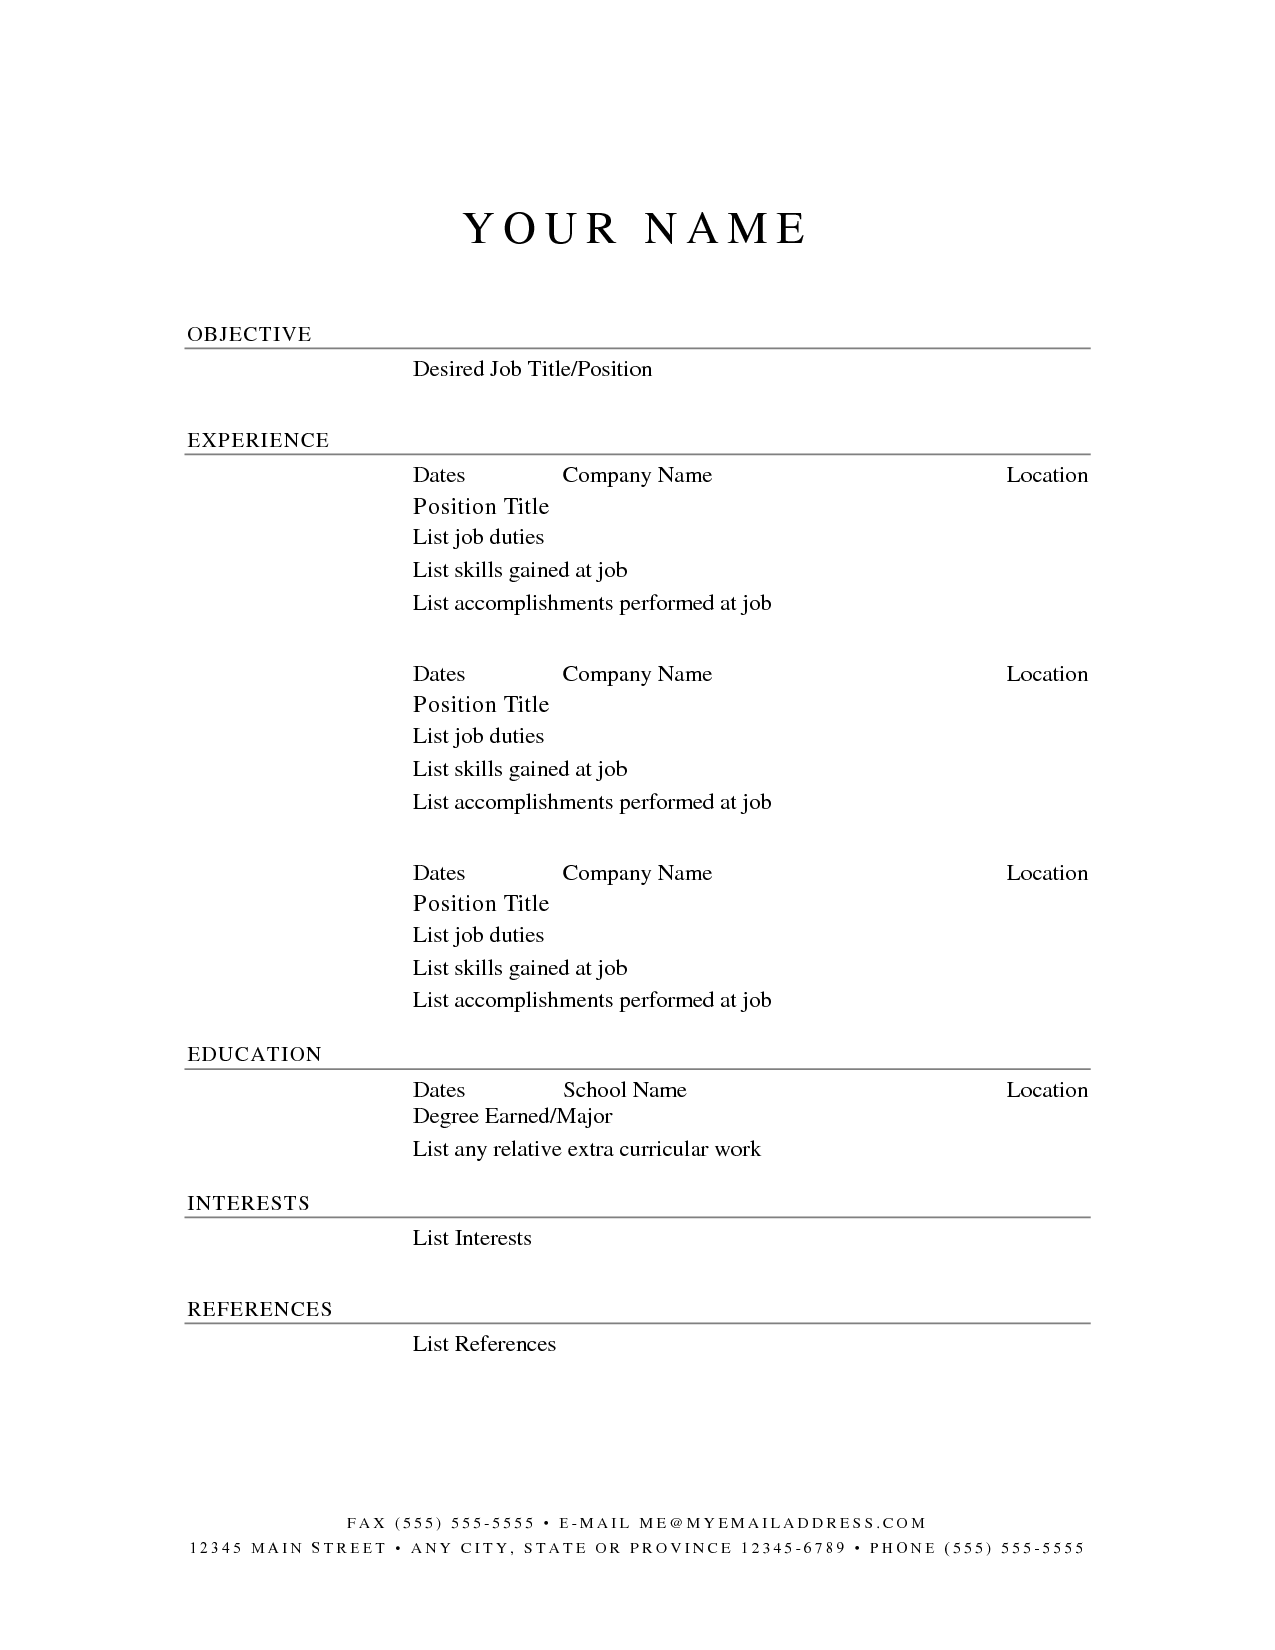 Printable resume templates free printable resume template printable resume templates free printable resume template yelopaper